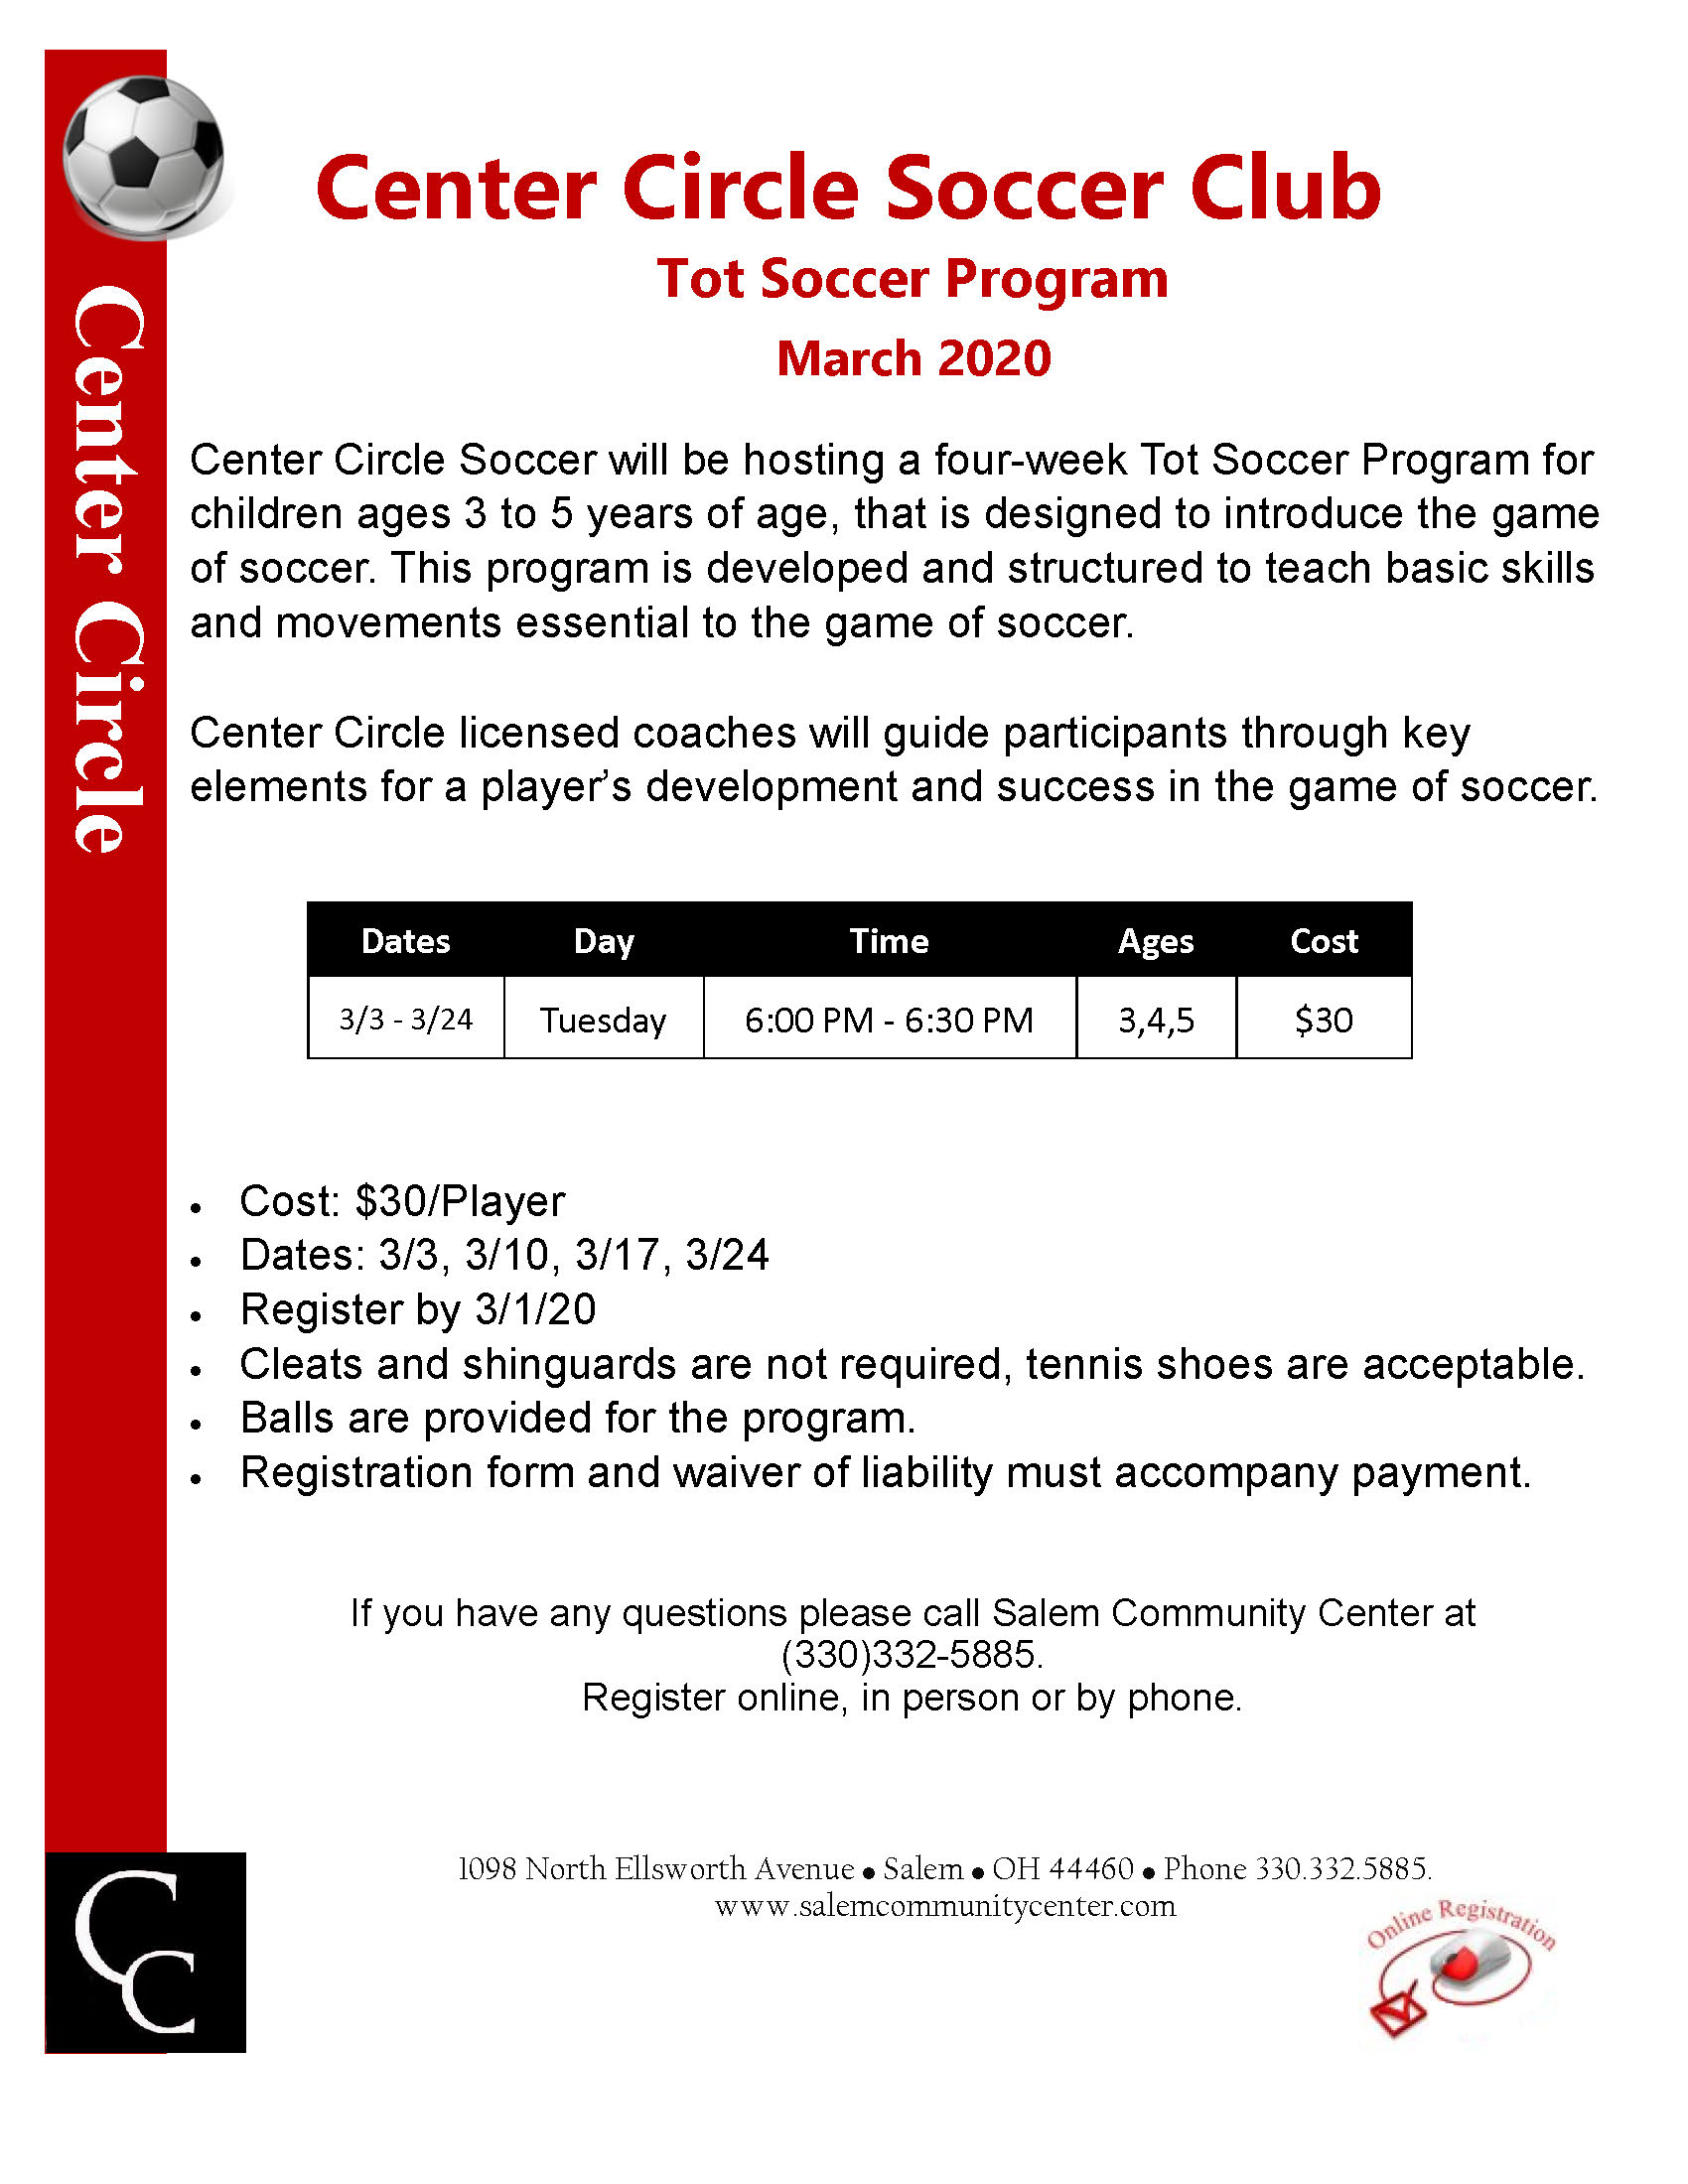 CCS Tot Soccer Program March 2020